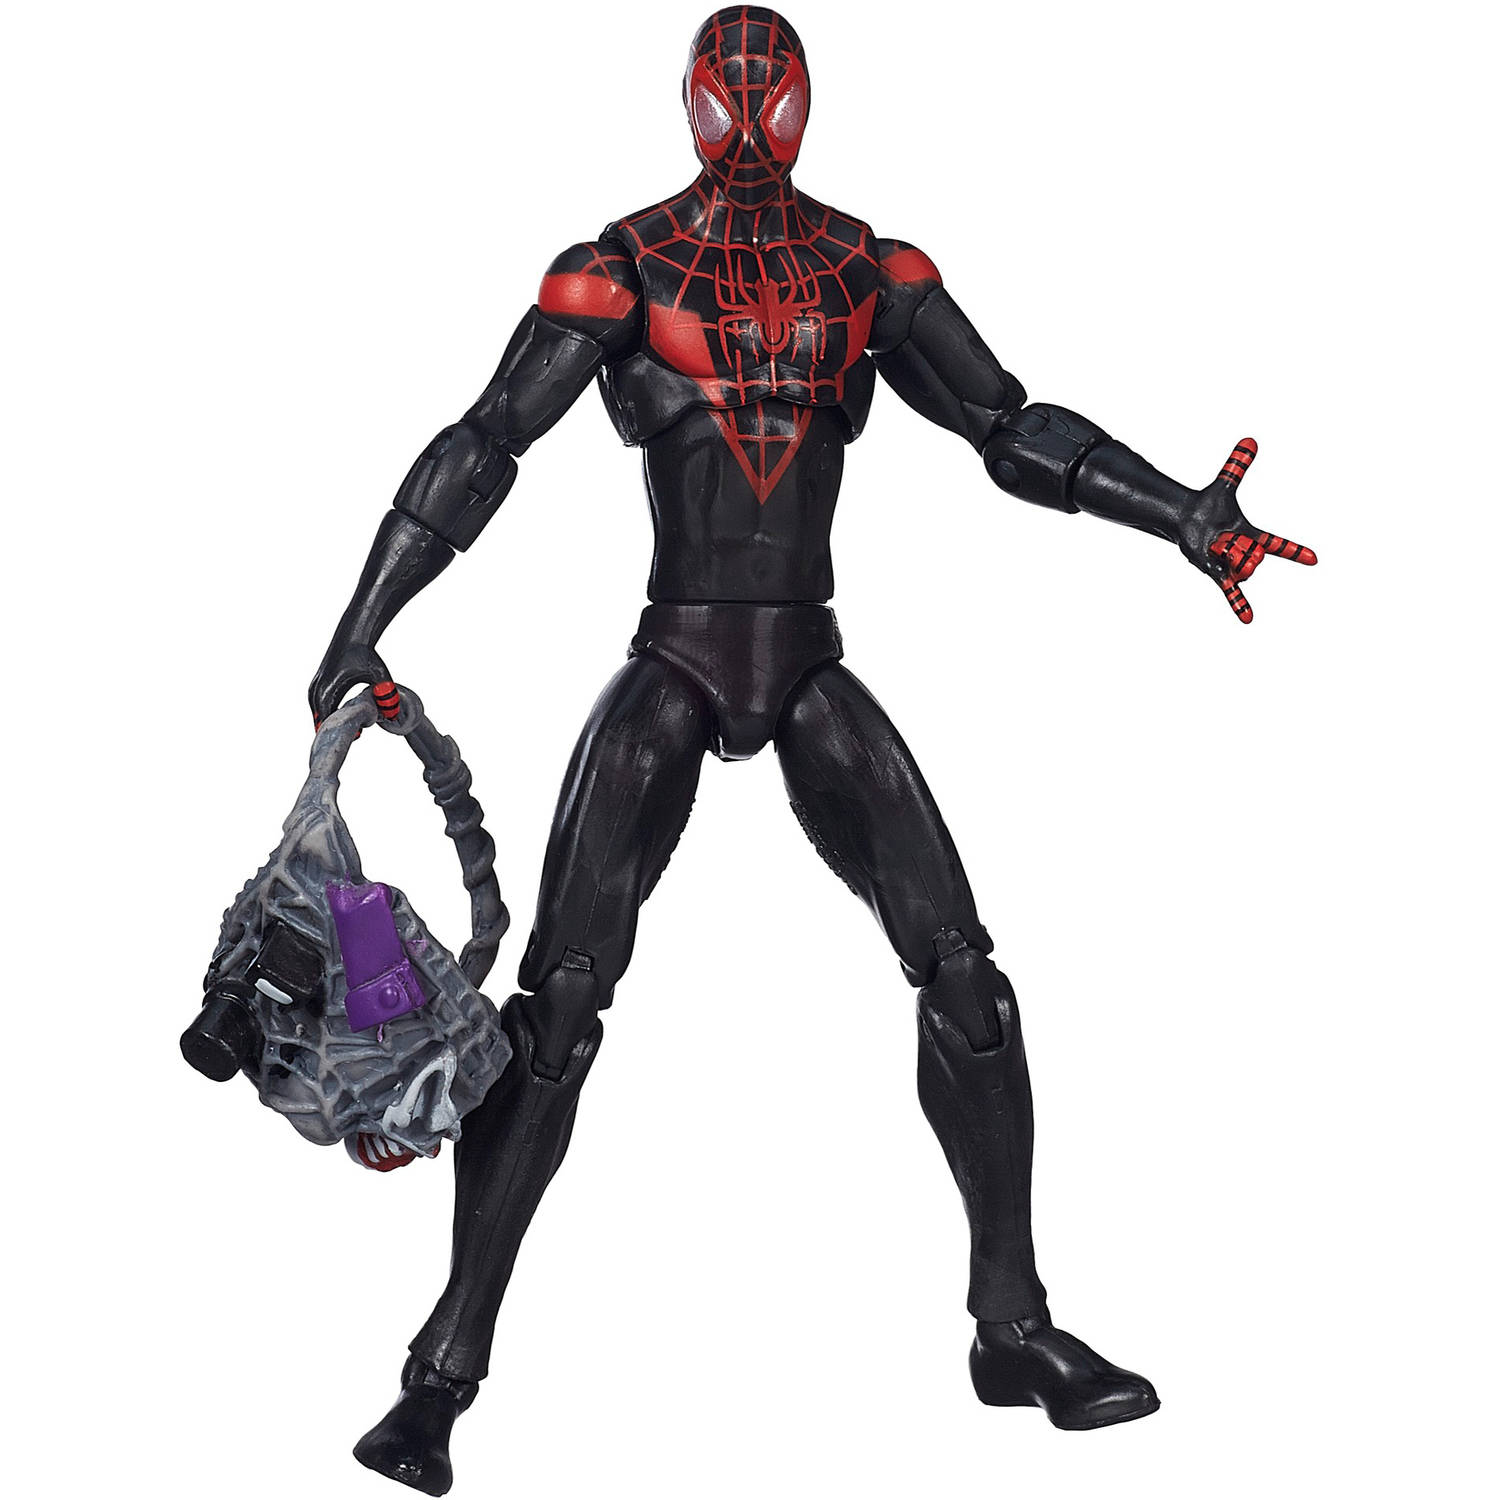 Marvel Avengers Infinite Series 5 Ultimate Spider-Man Action Figure